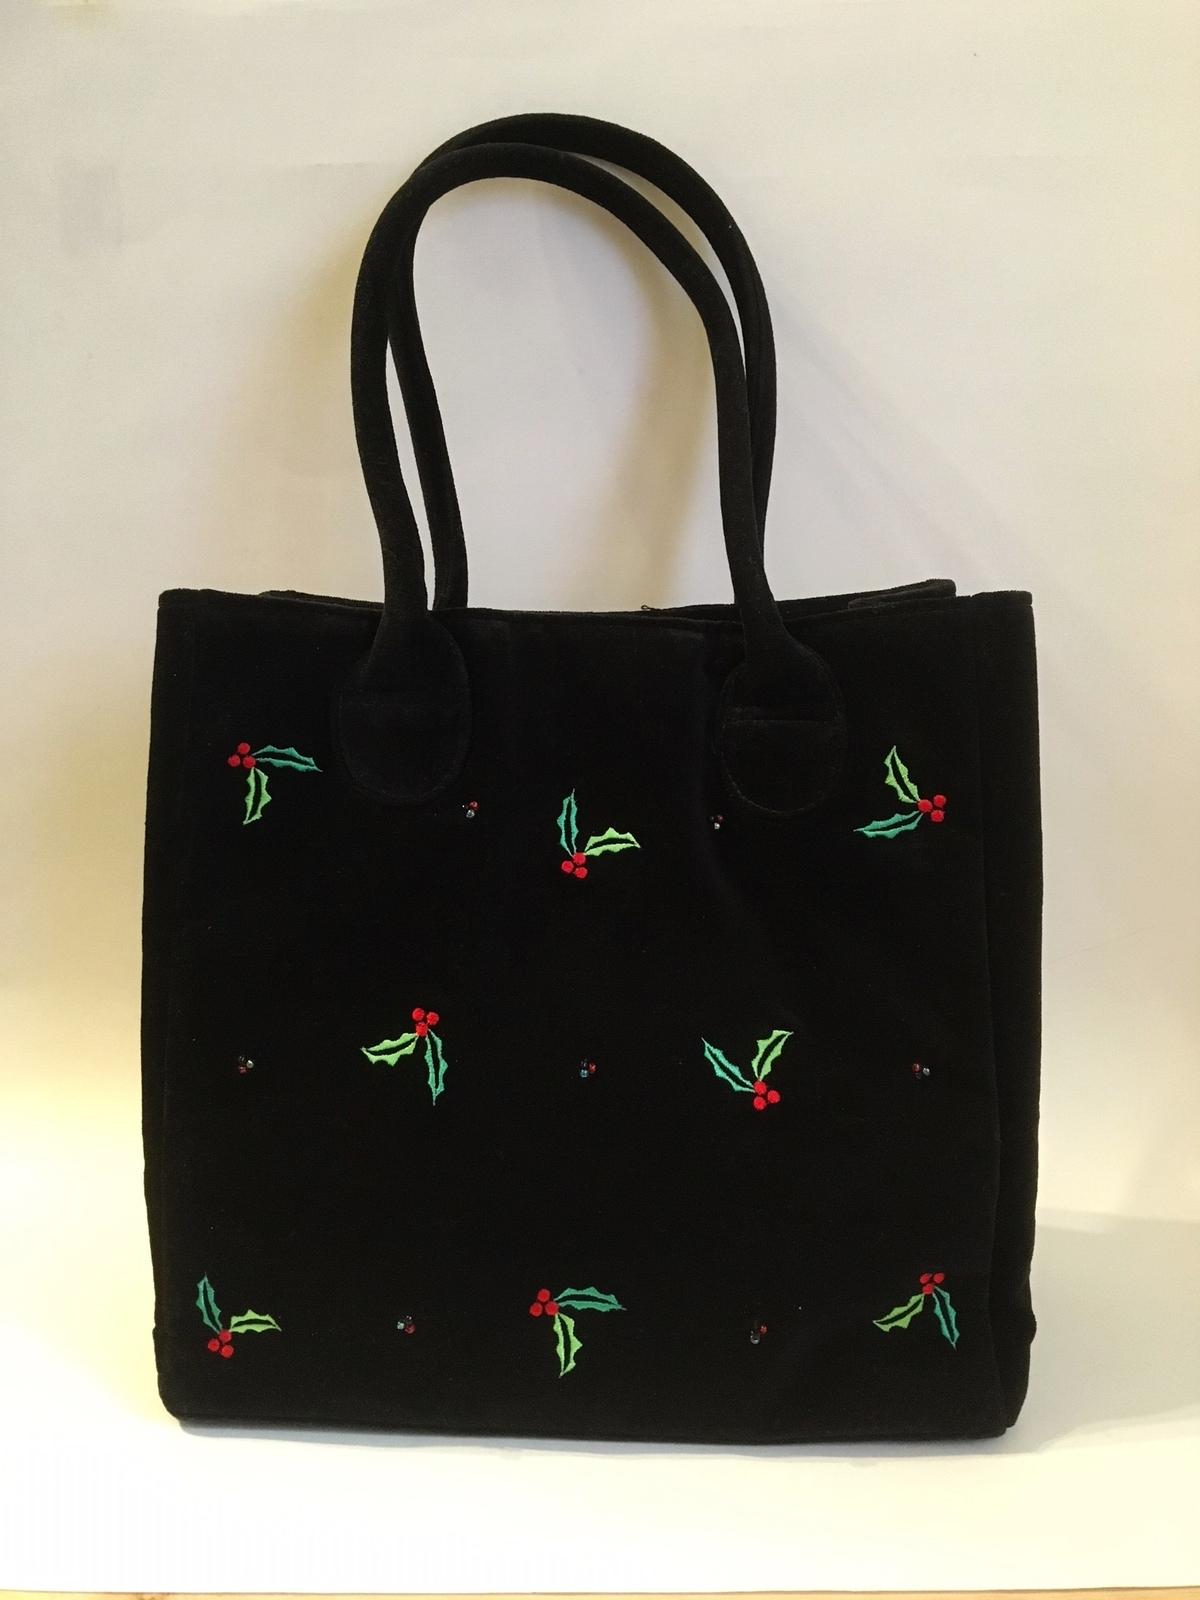 Purse holly berry black velour  1  36  .75